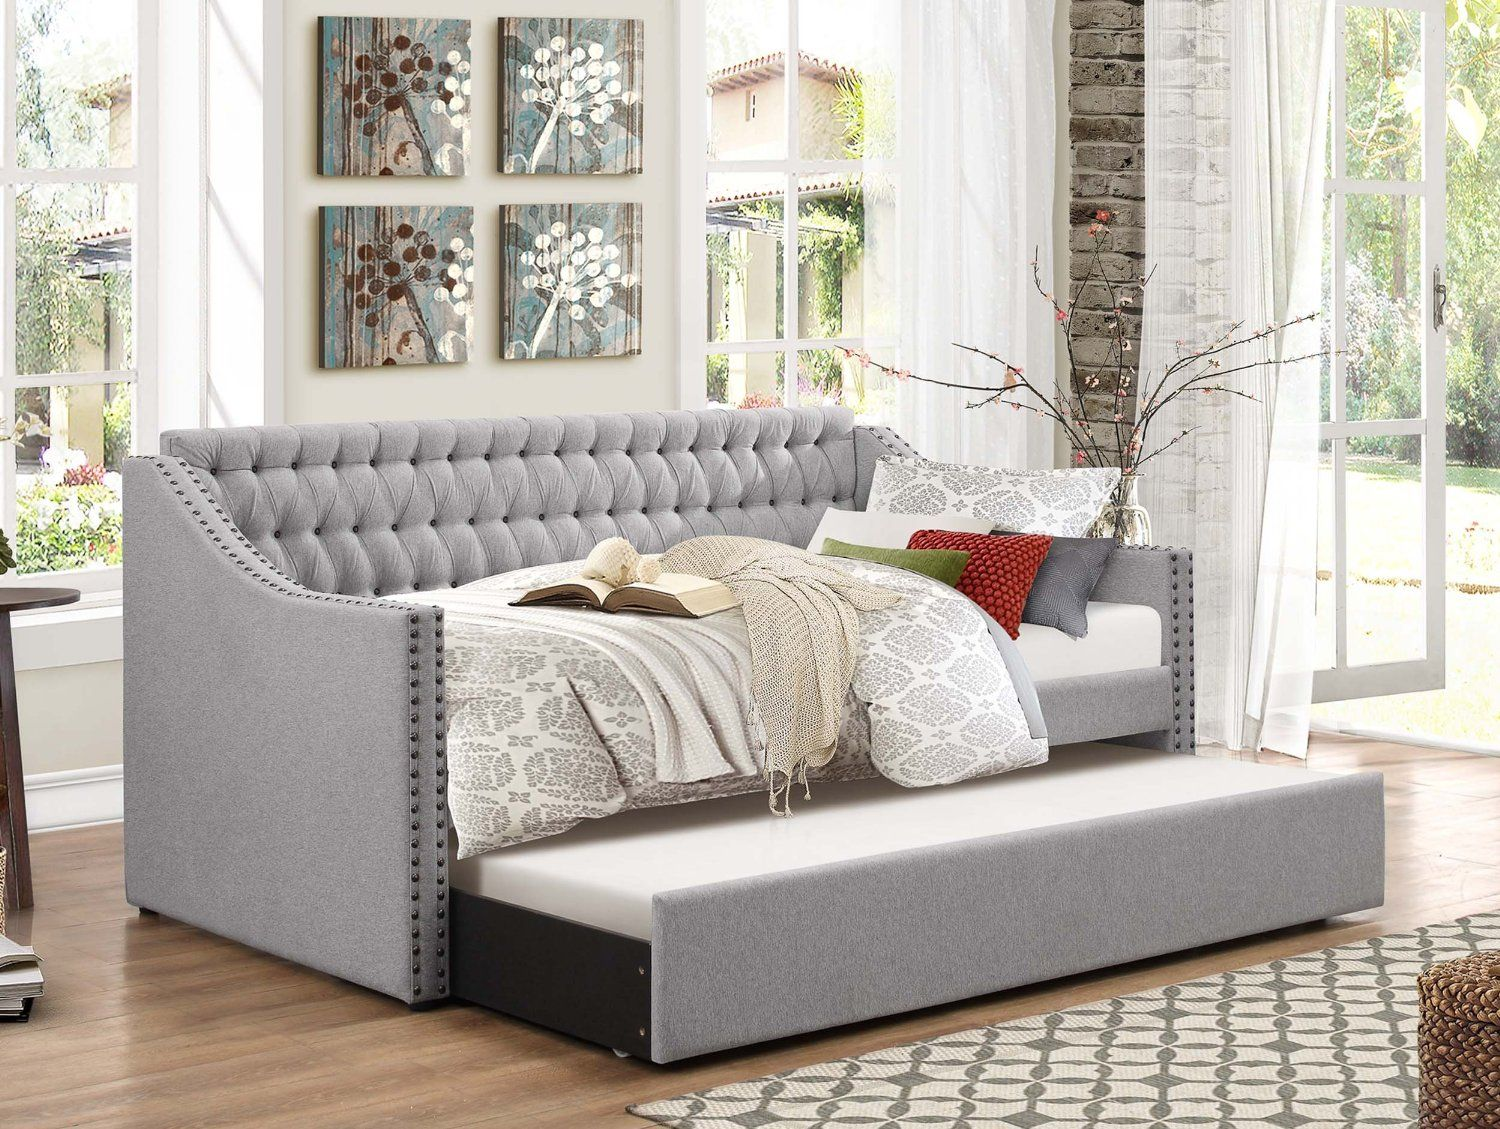 amazon com homelegance sleigh daybed with tufted back rest and nail